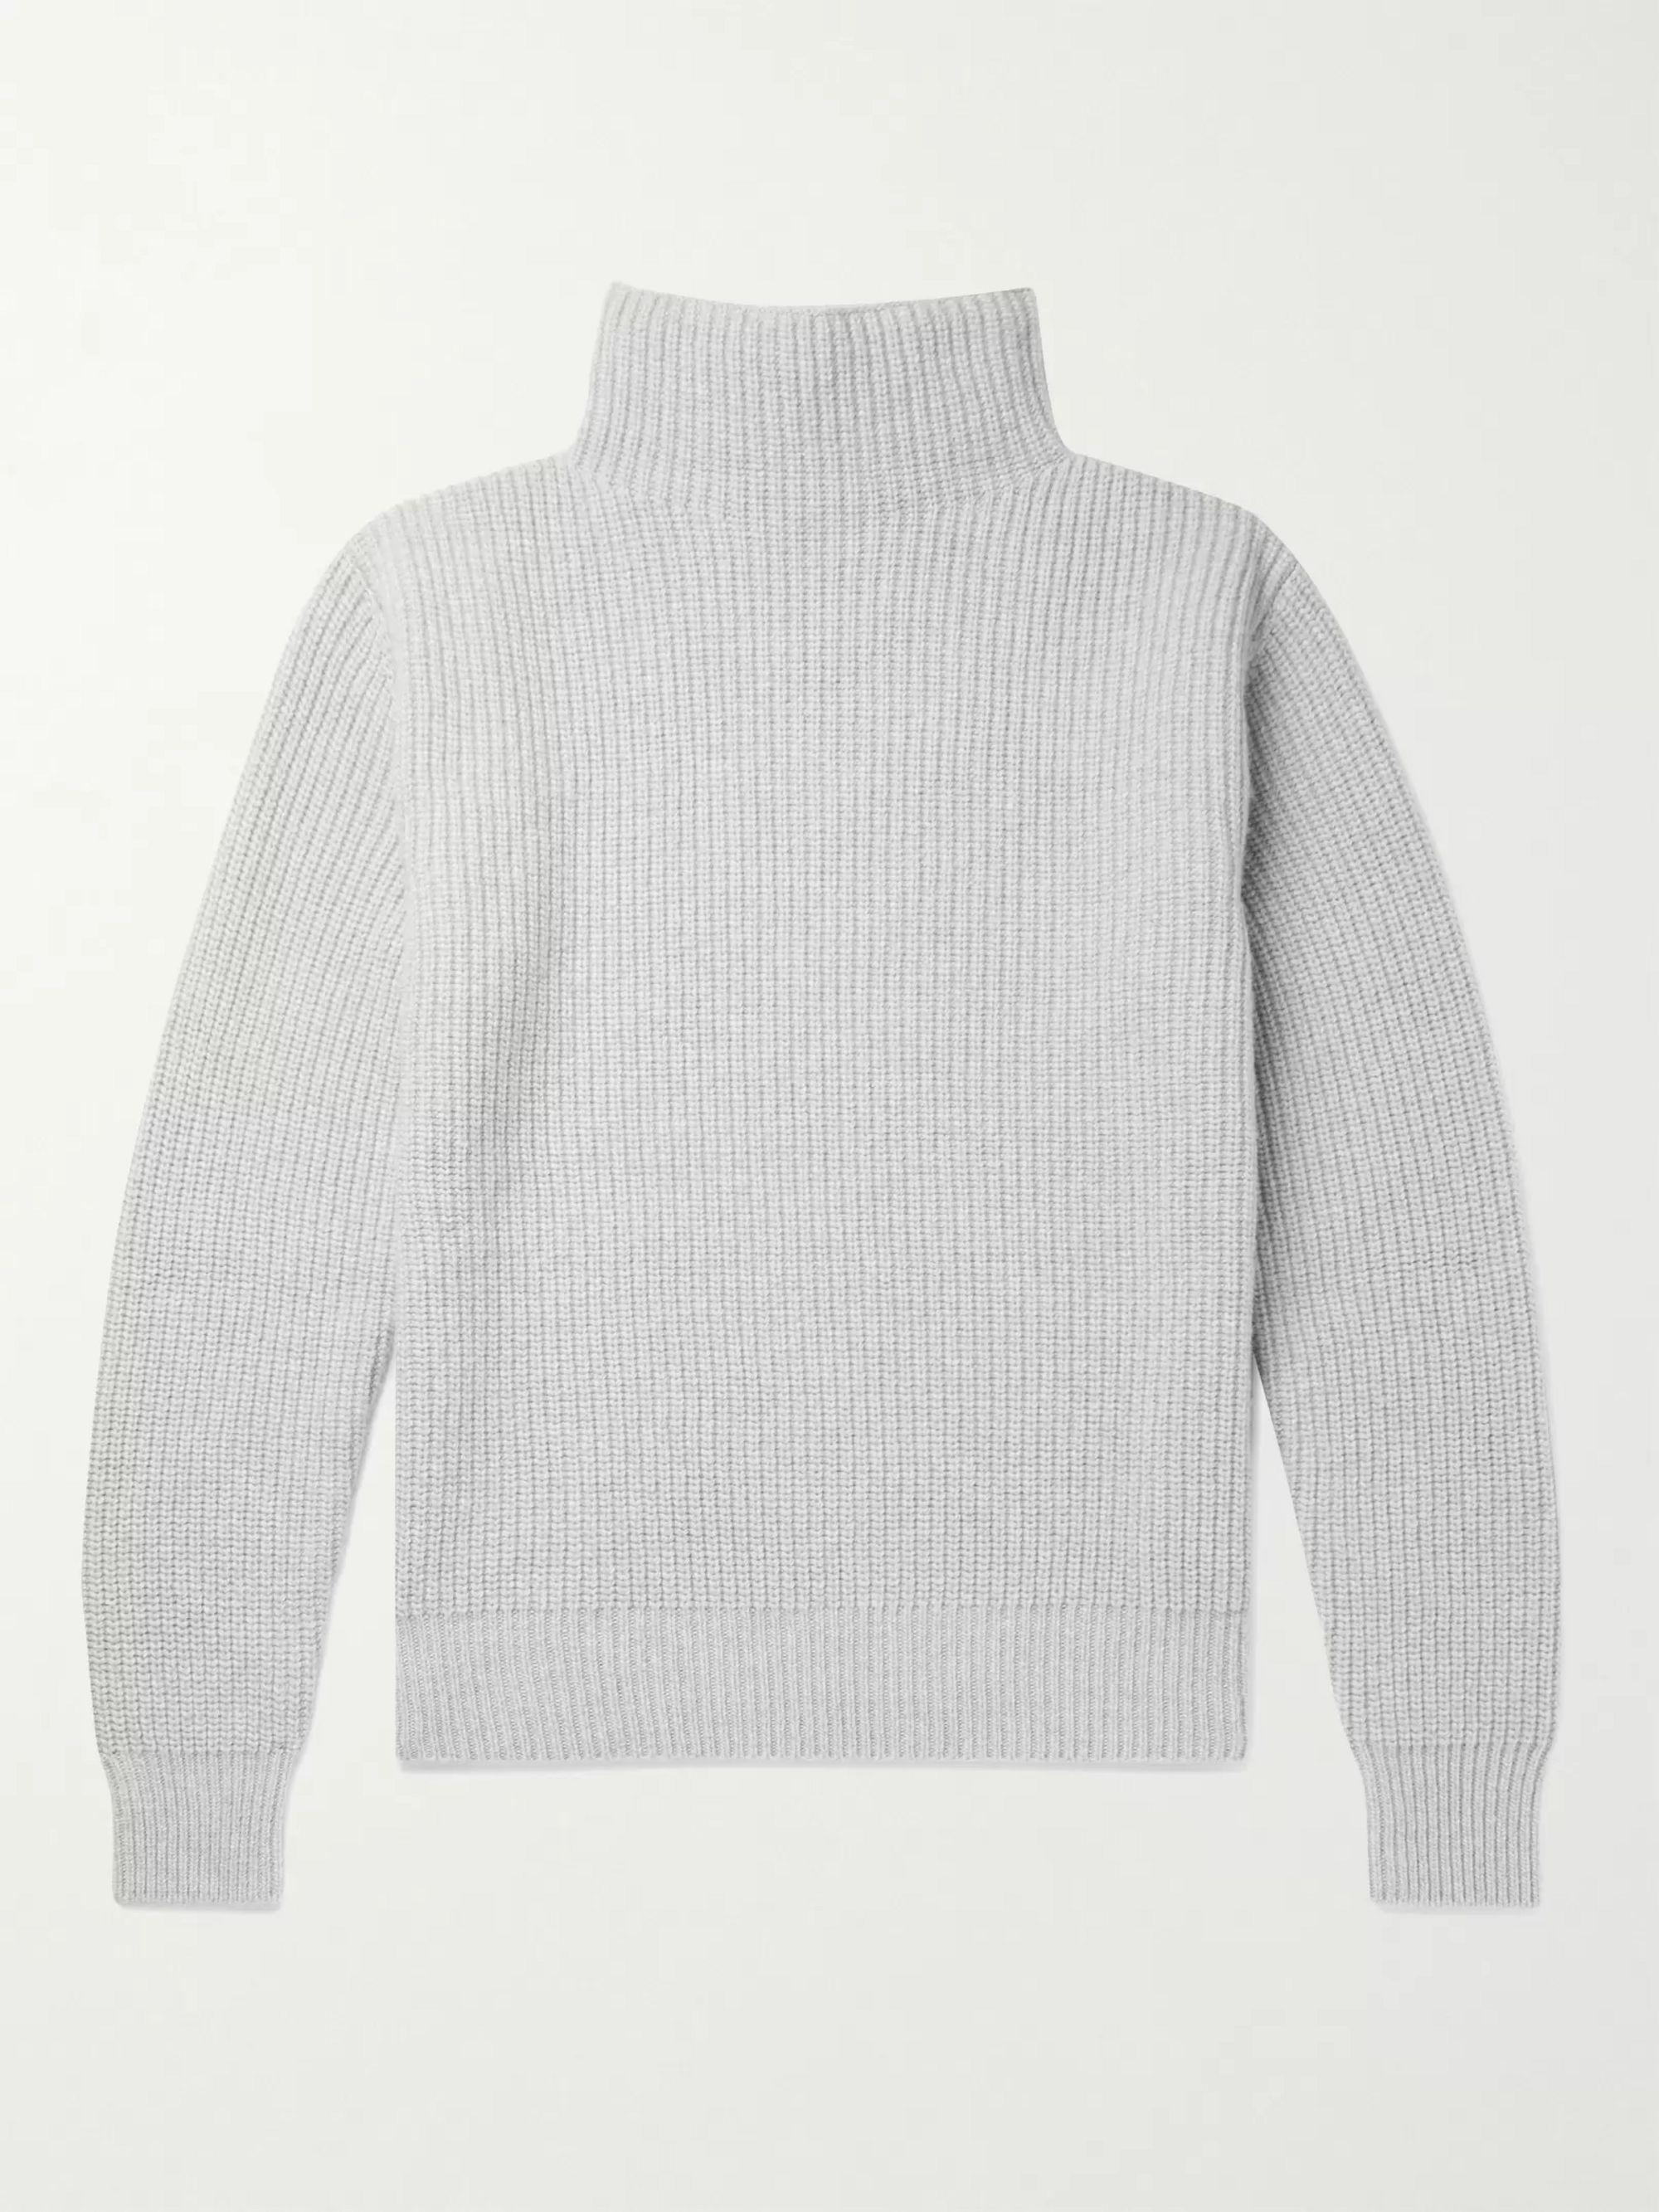 Mr P. Stand-Collar Ribbed Virgin Wool Sweater